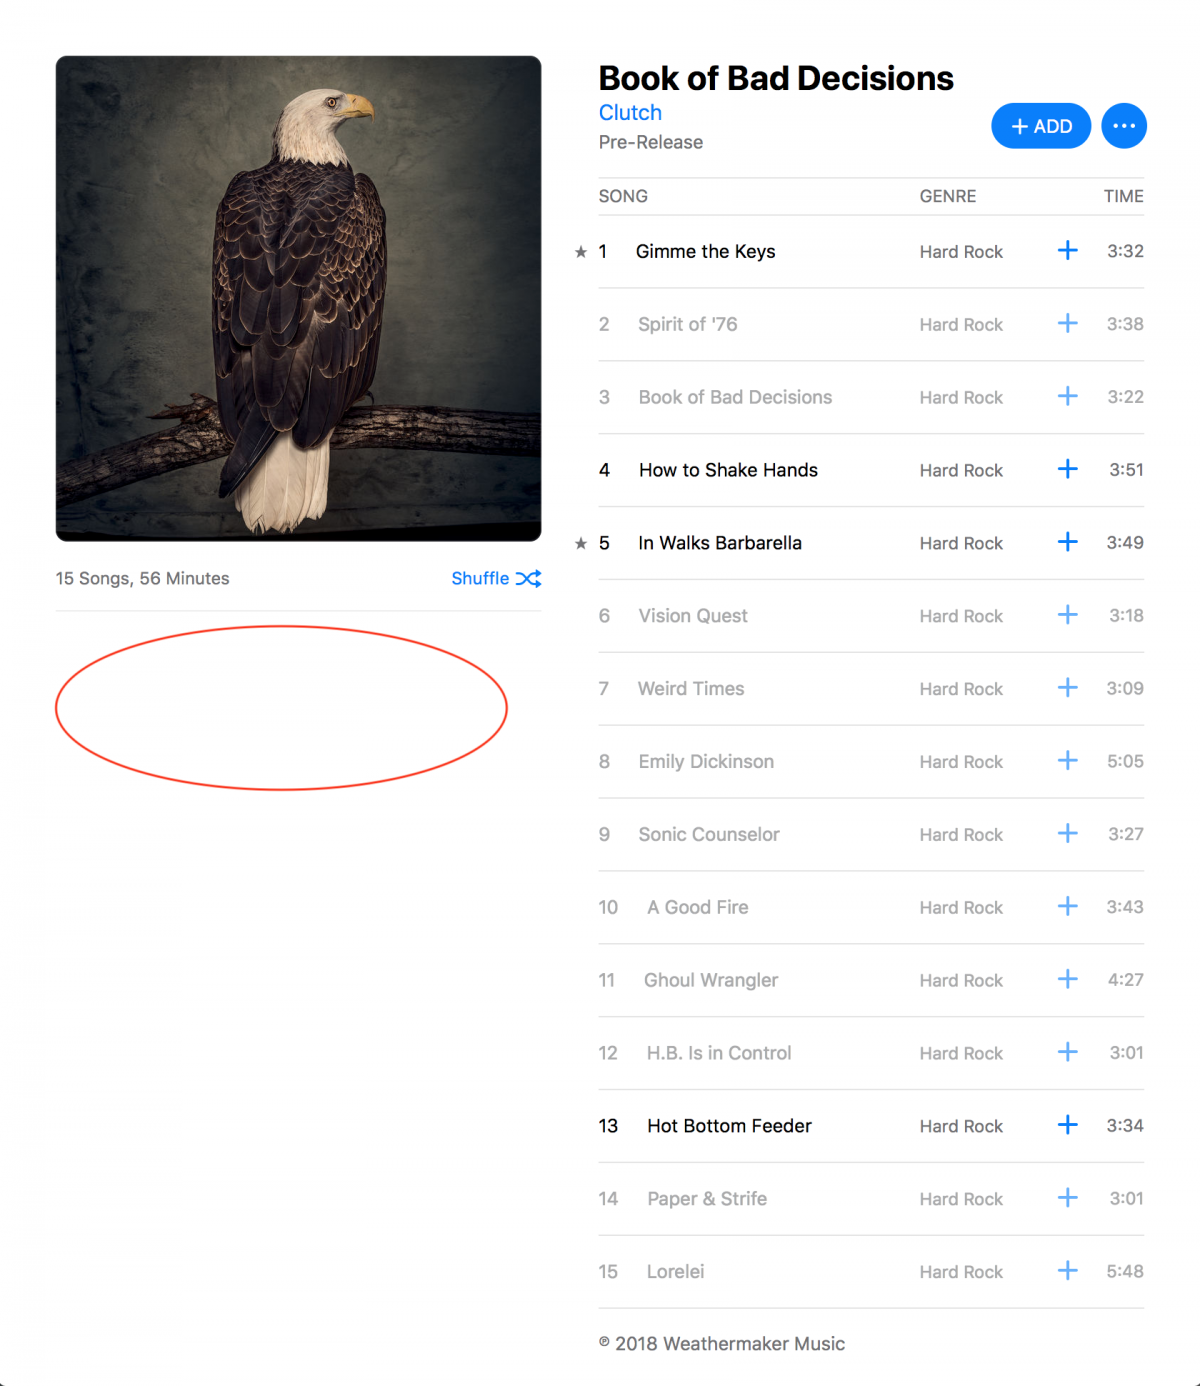 Clutch's Book of Bad Decisions on Apple Music